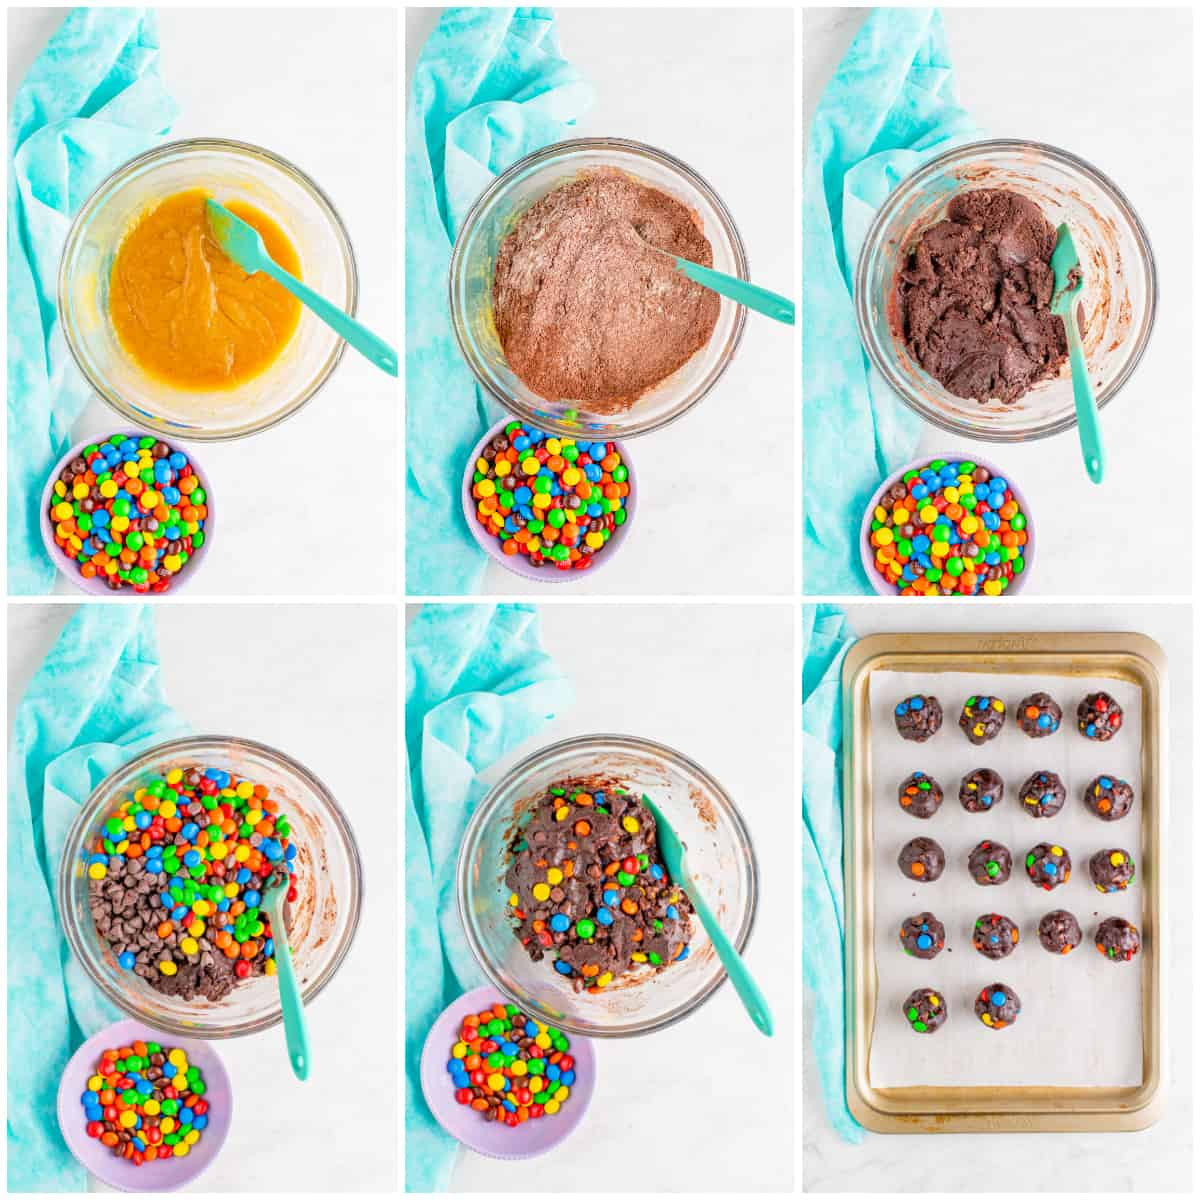 Step by step photos on how to make Chocolate M&M Cookies